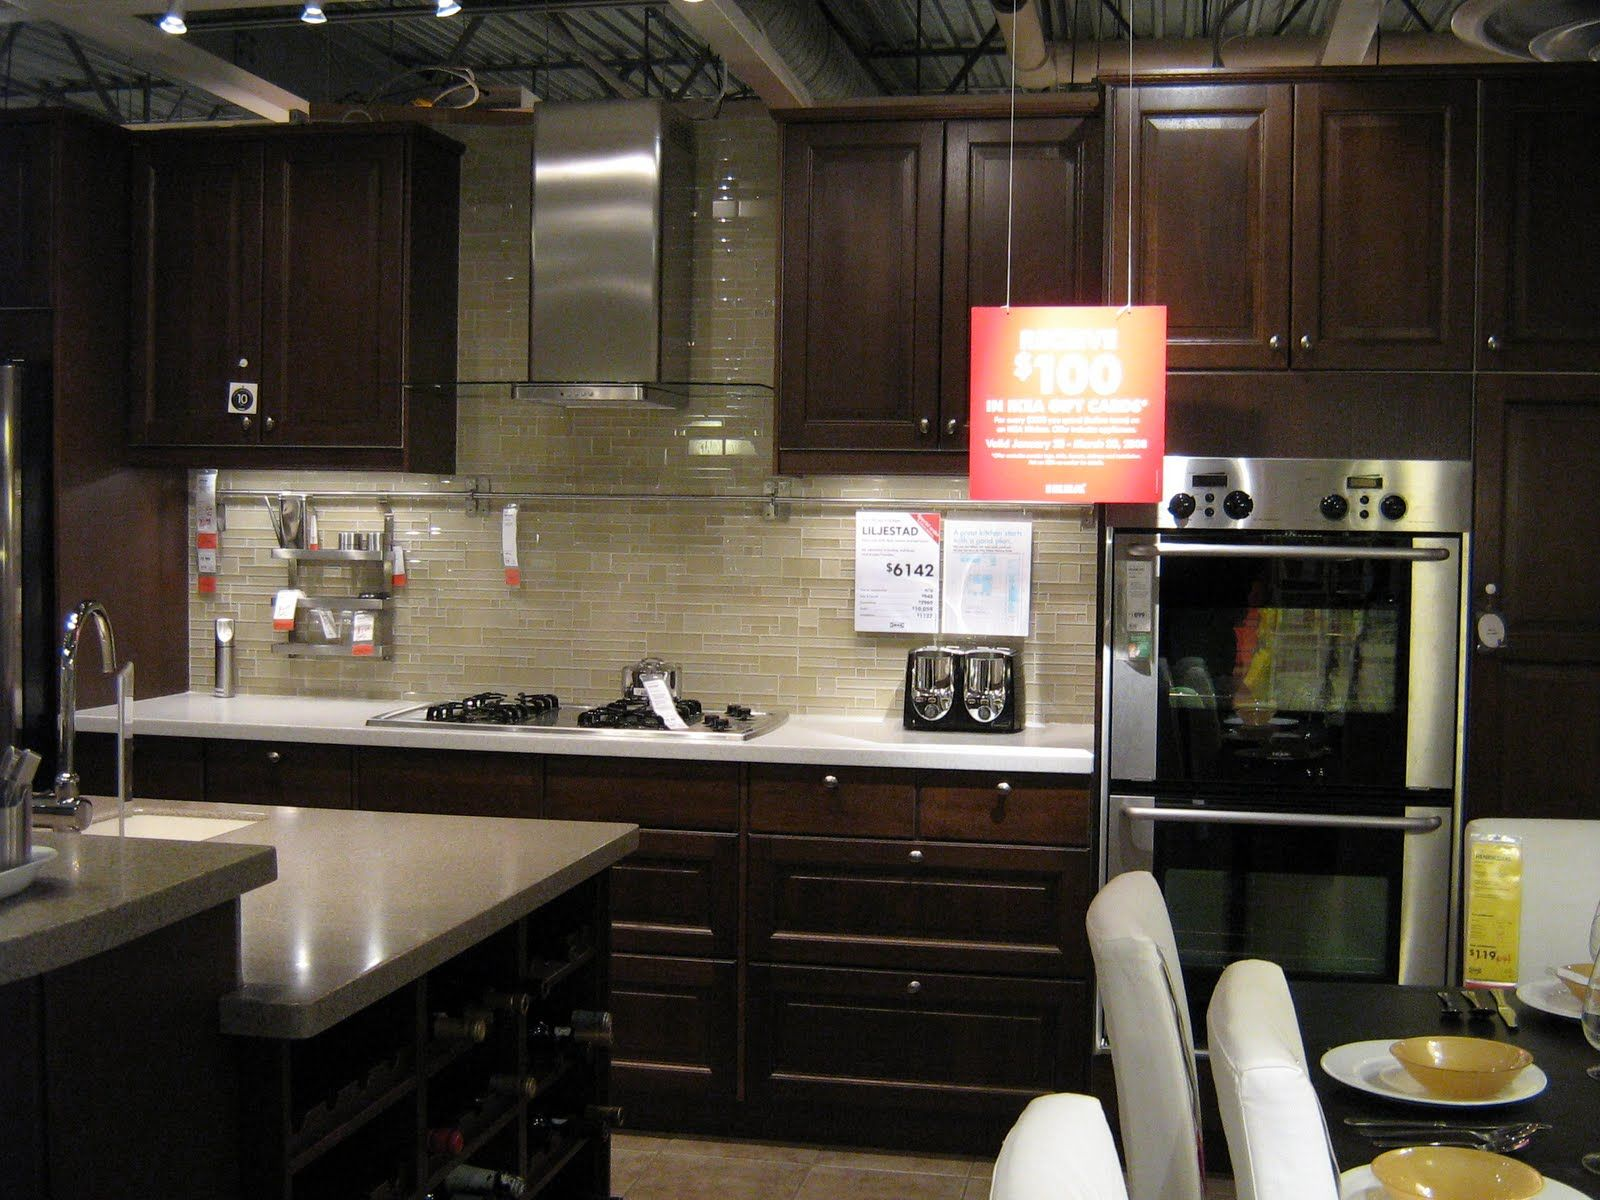 pictures of ikea kitchens dark wood cabinets and light sand tones glass tile backsplash - Ikea Black Kitchen Cabinets